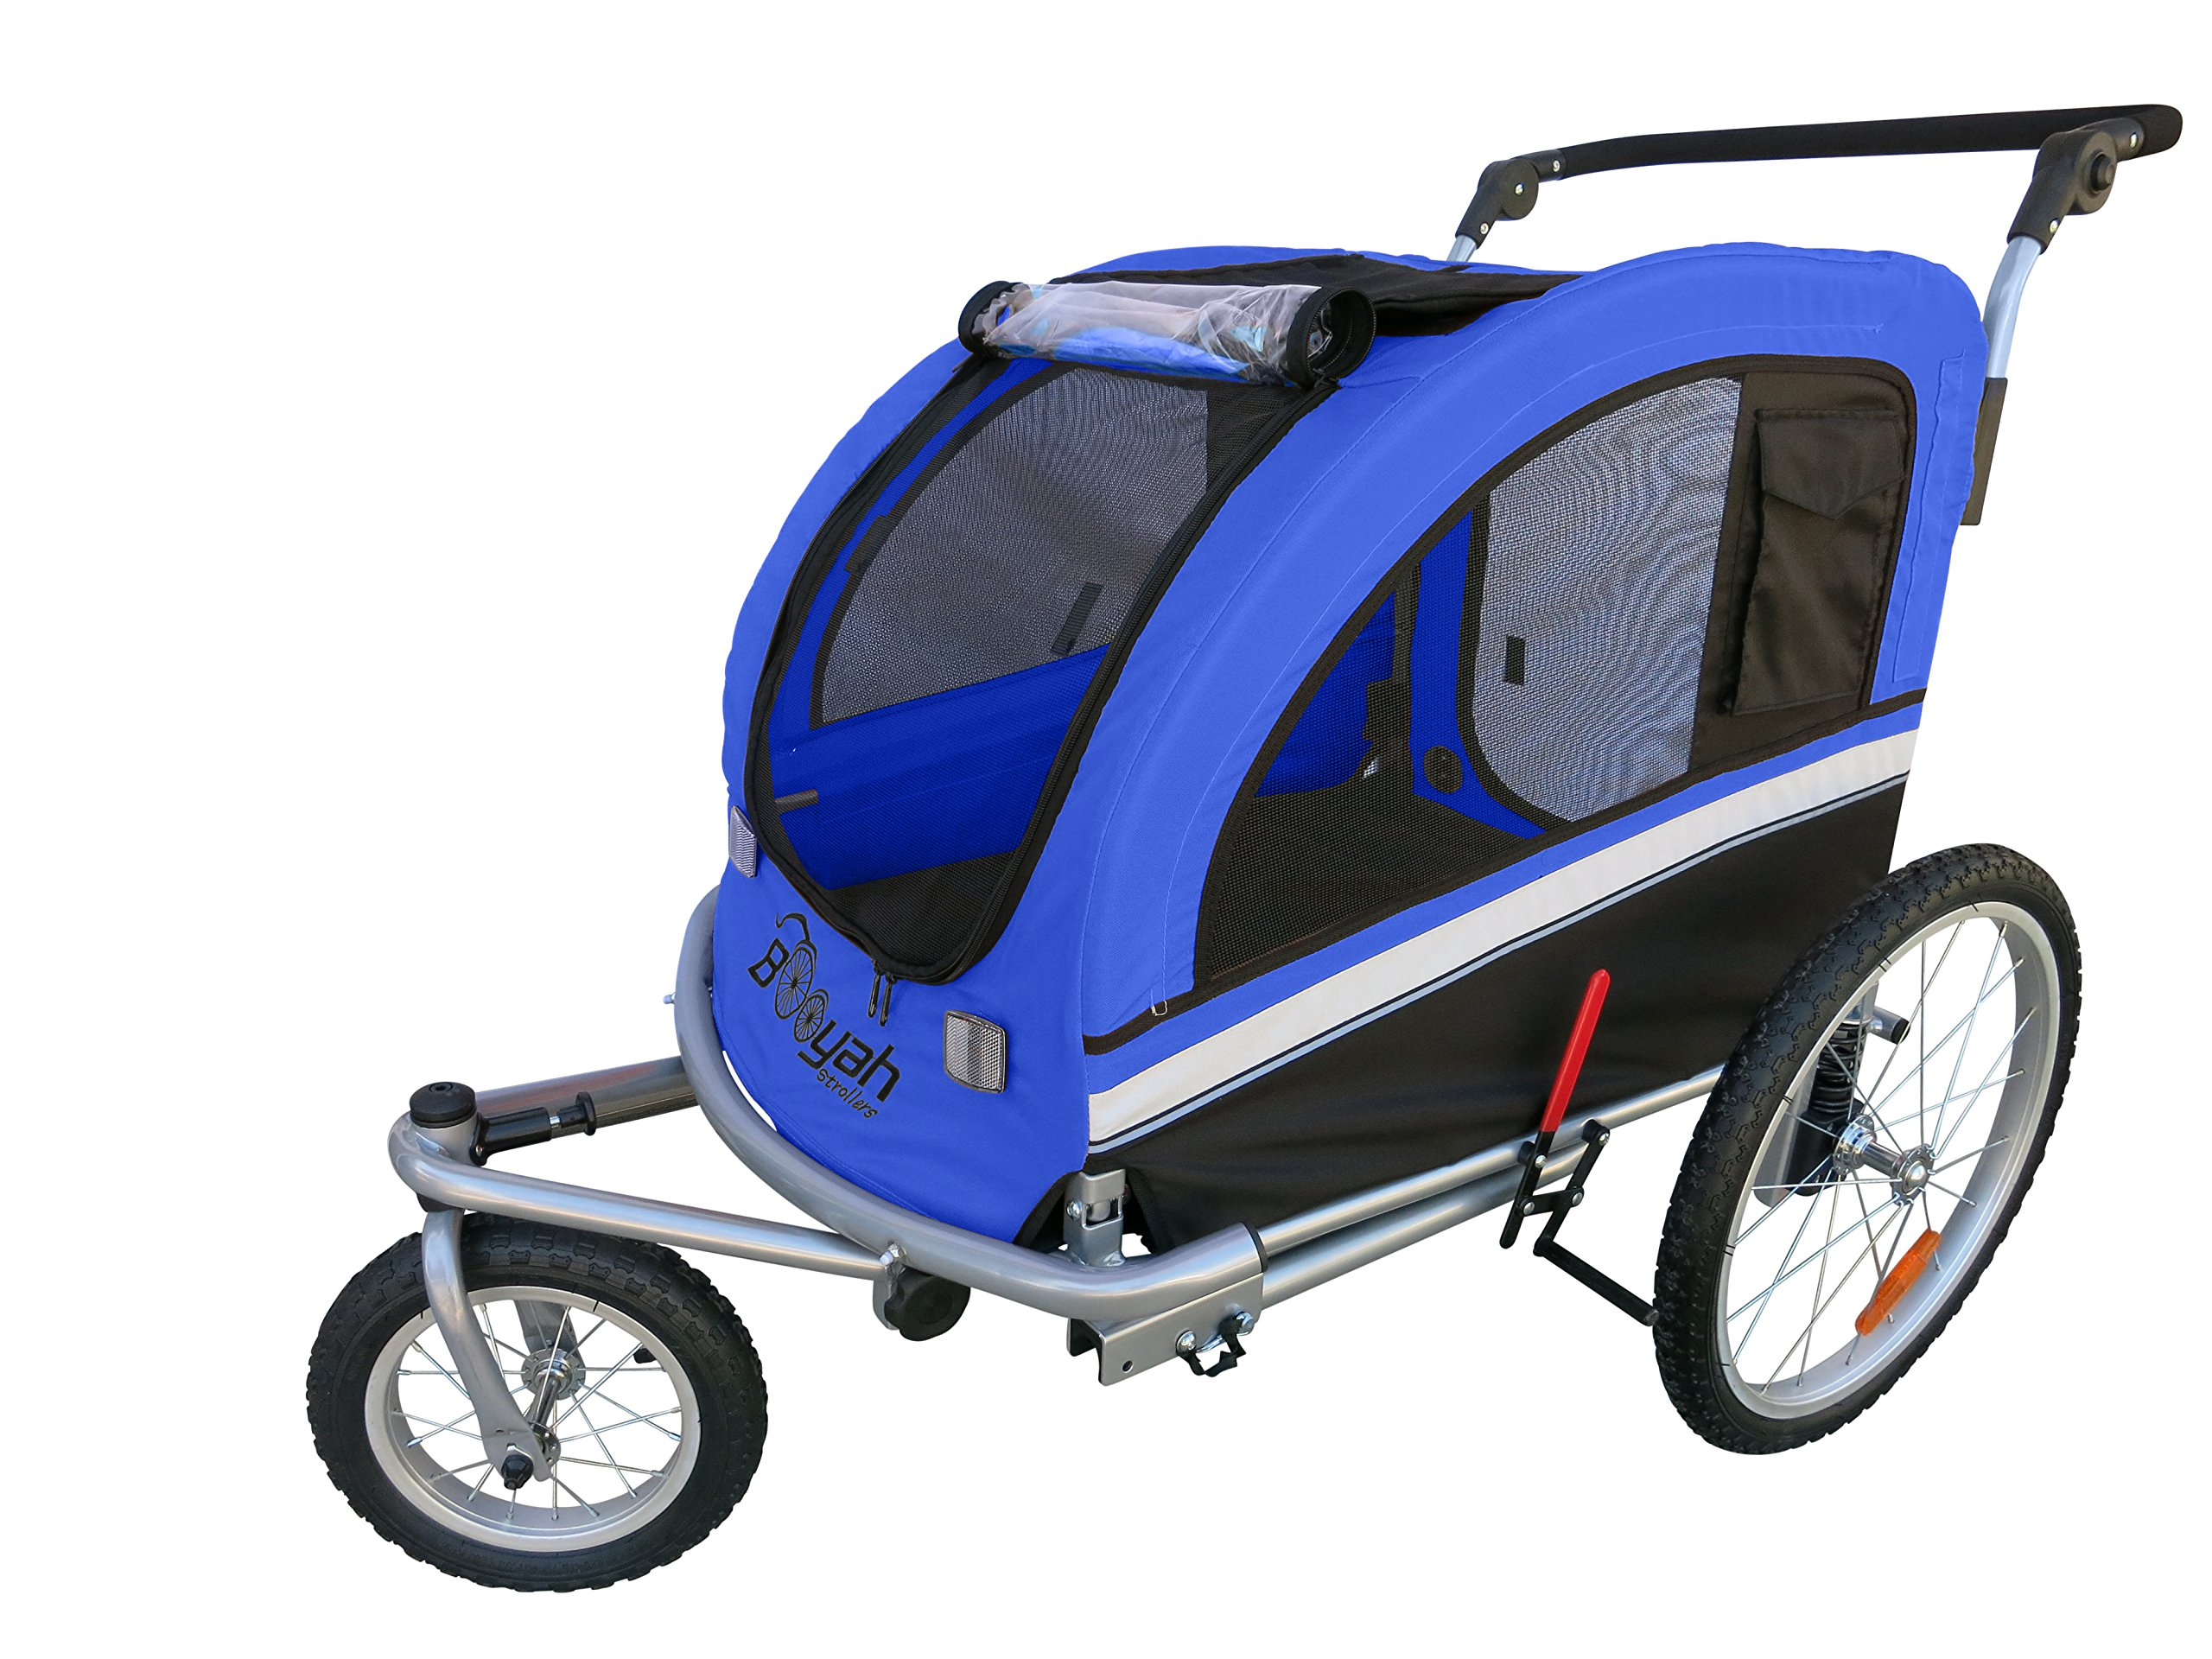 MB Booyah Large Pet Trailer Pet Bike Trailer & Jogger with Shocks - Blue by Booyah Strollers